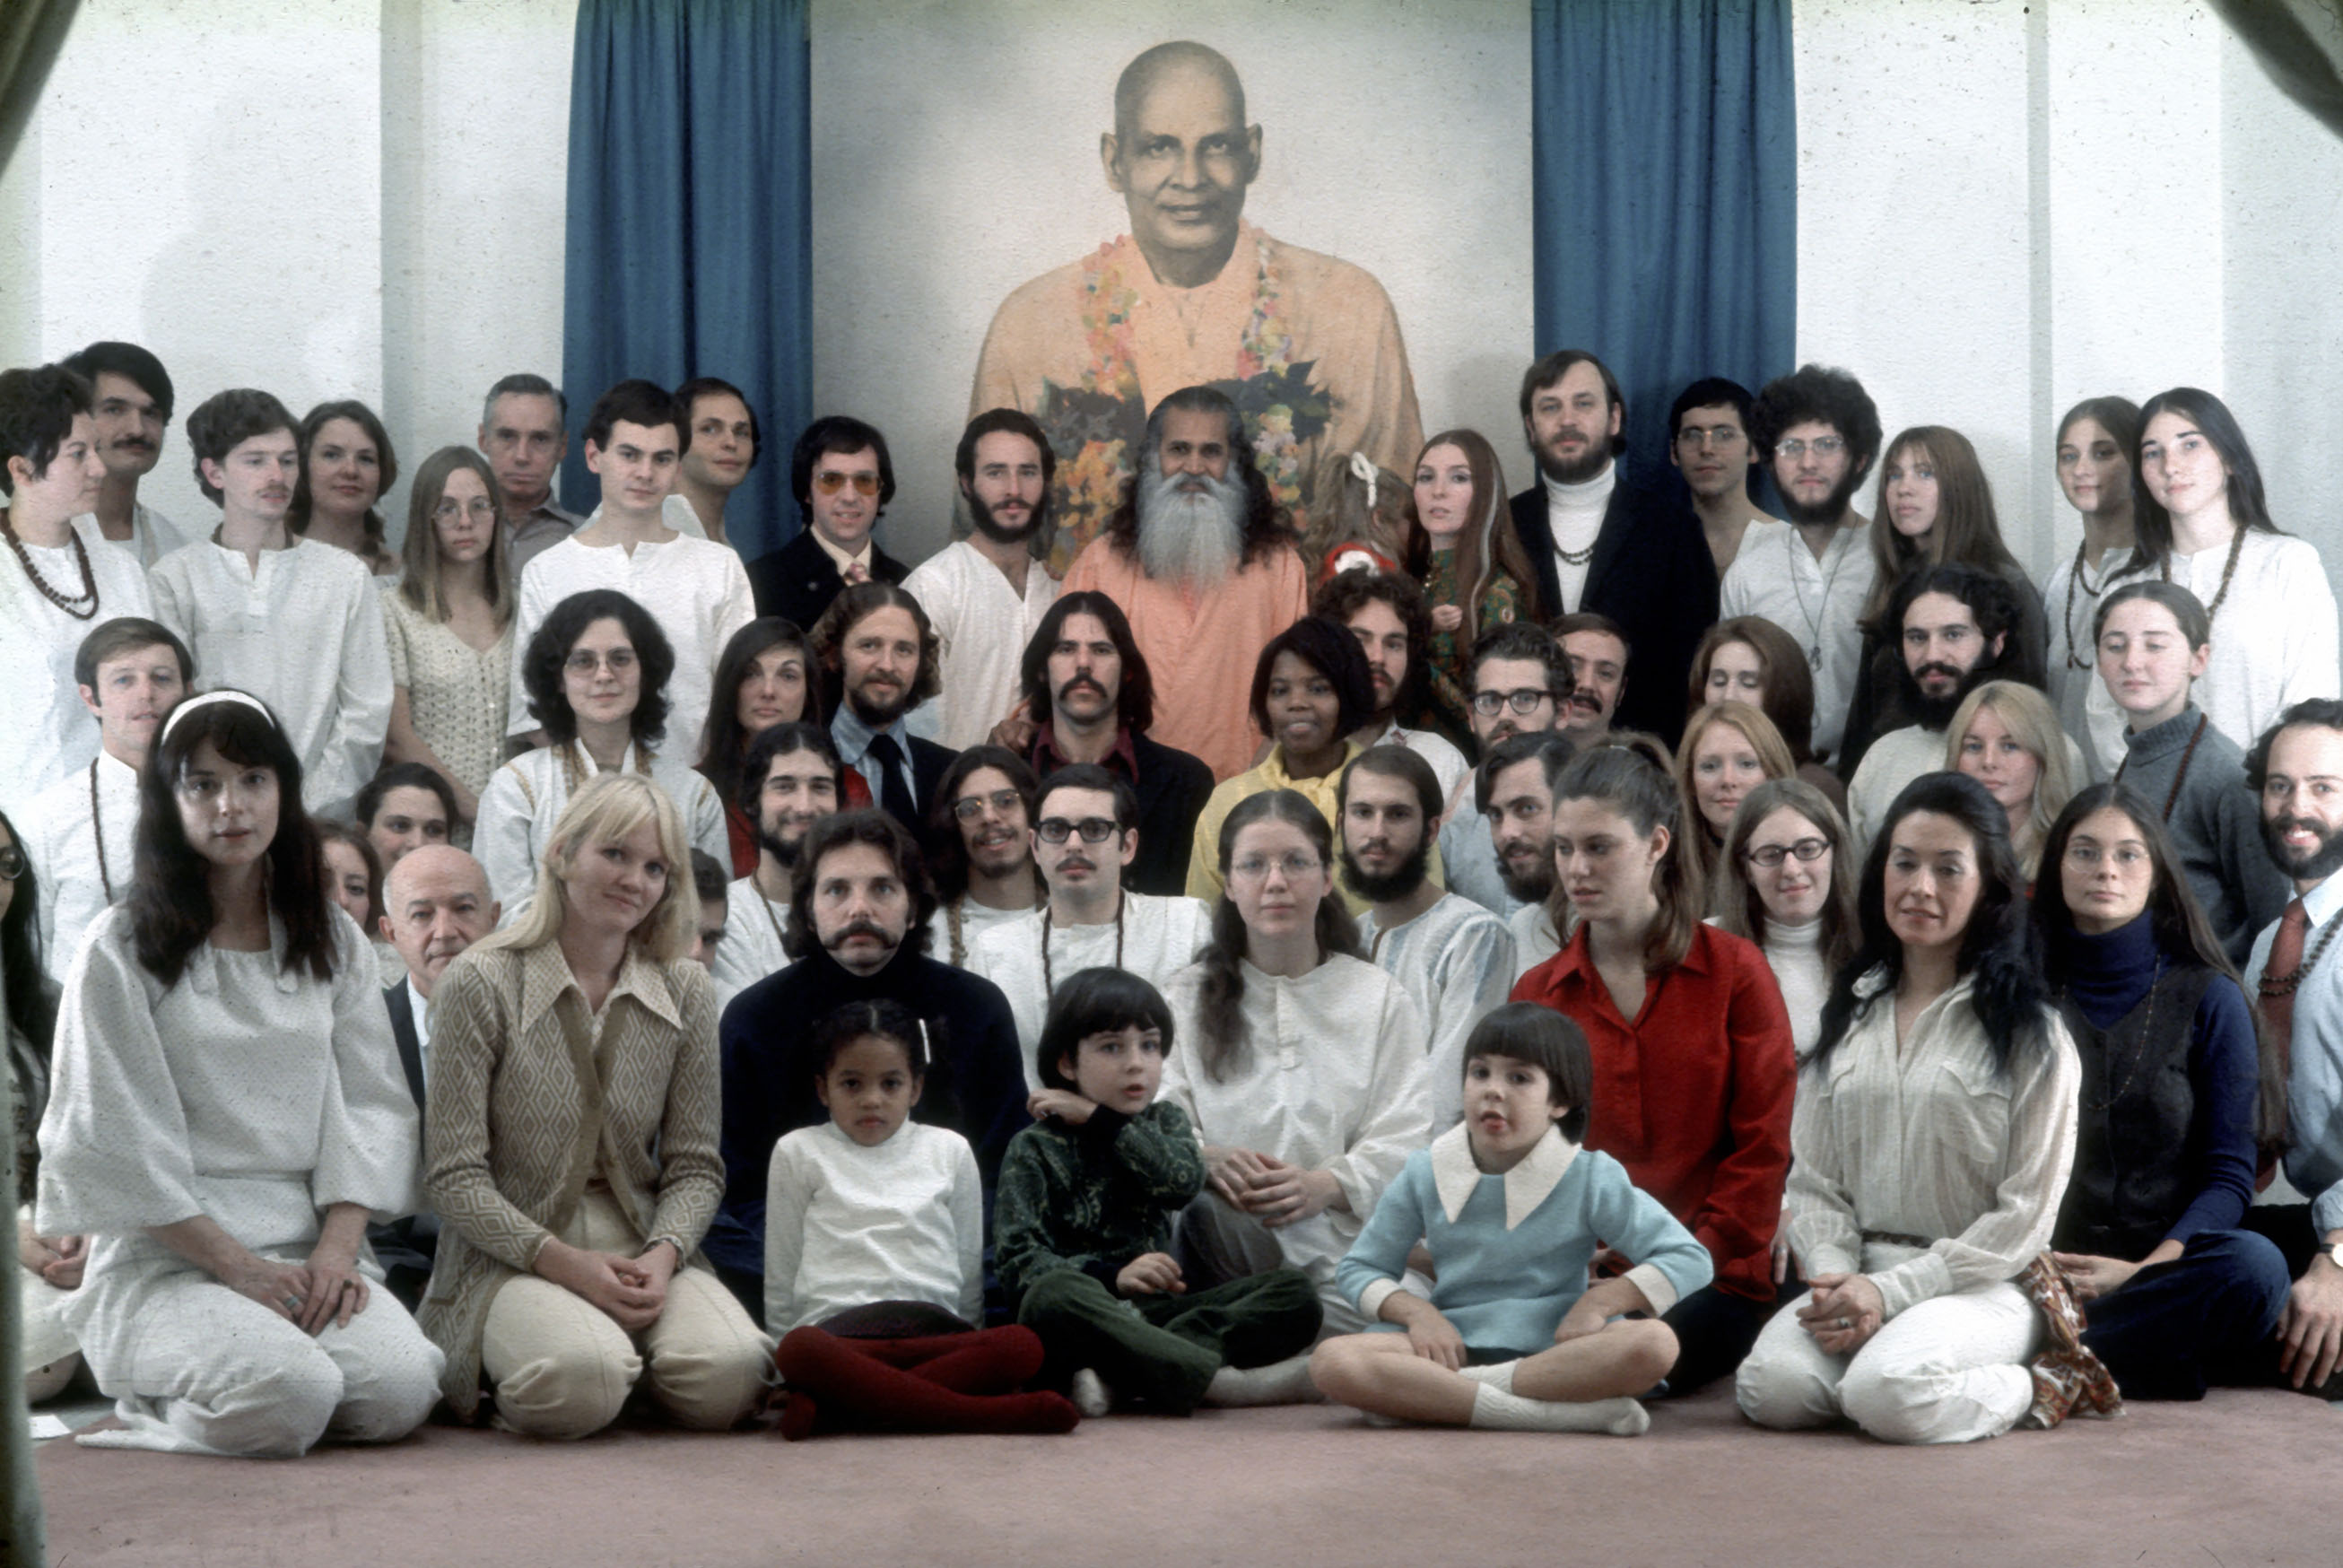 First students of the Integral Yoga Institute of New York (Peter Max just in front of Swami Satchidananda)